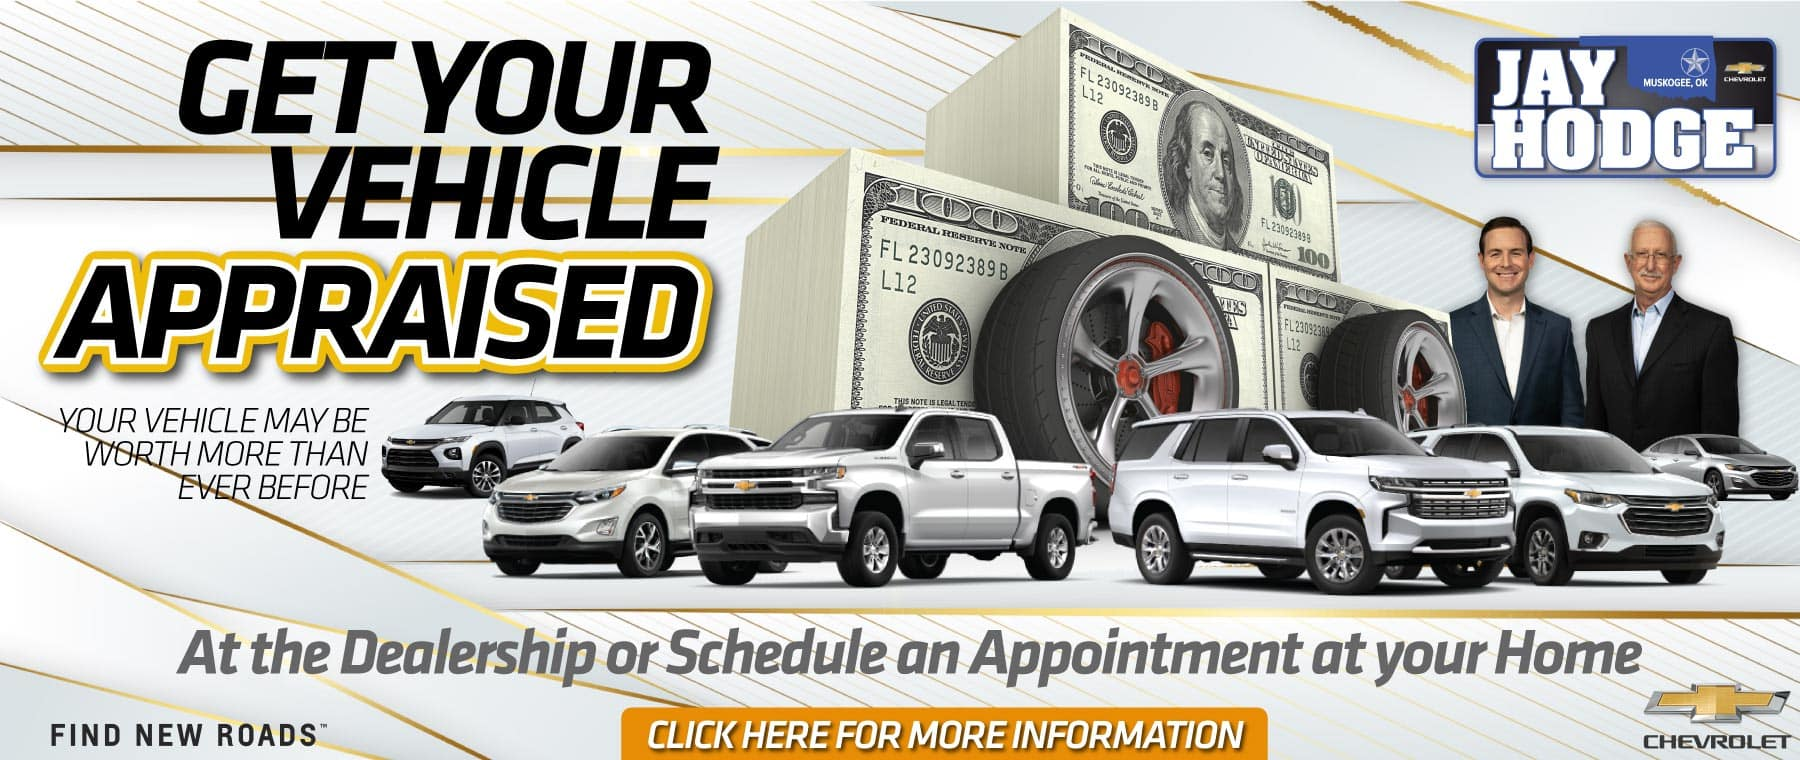 Get Your Vehicle Appraised - Click for More Information